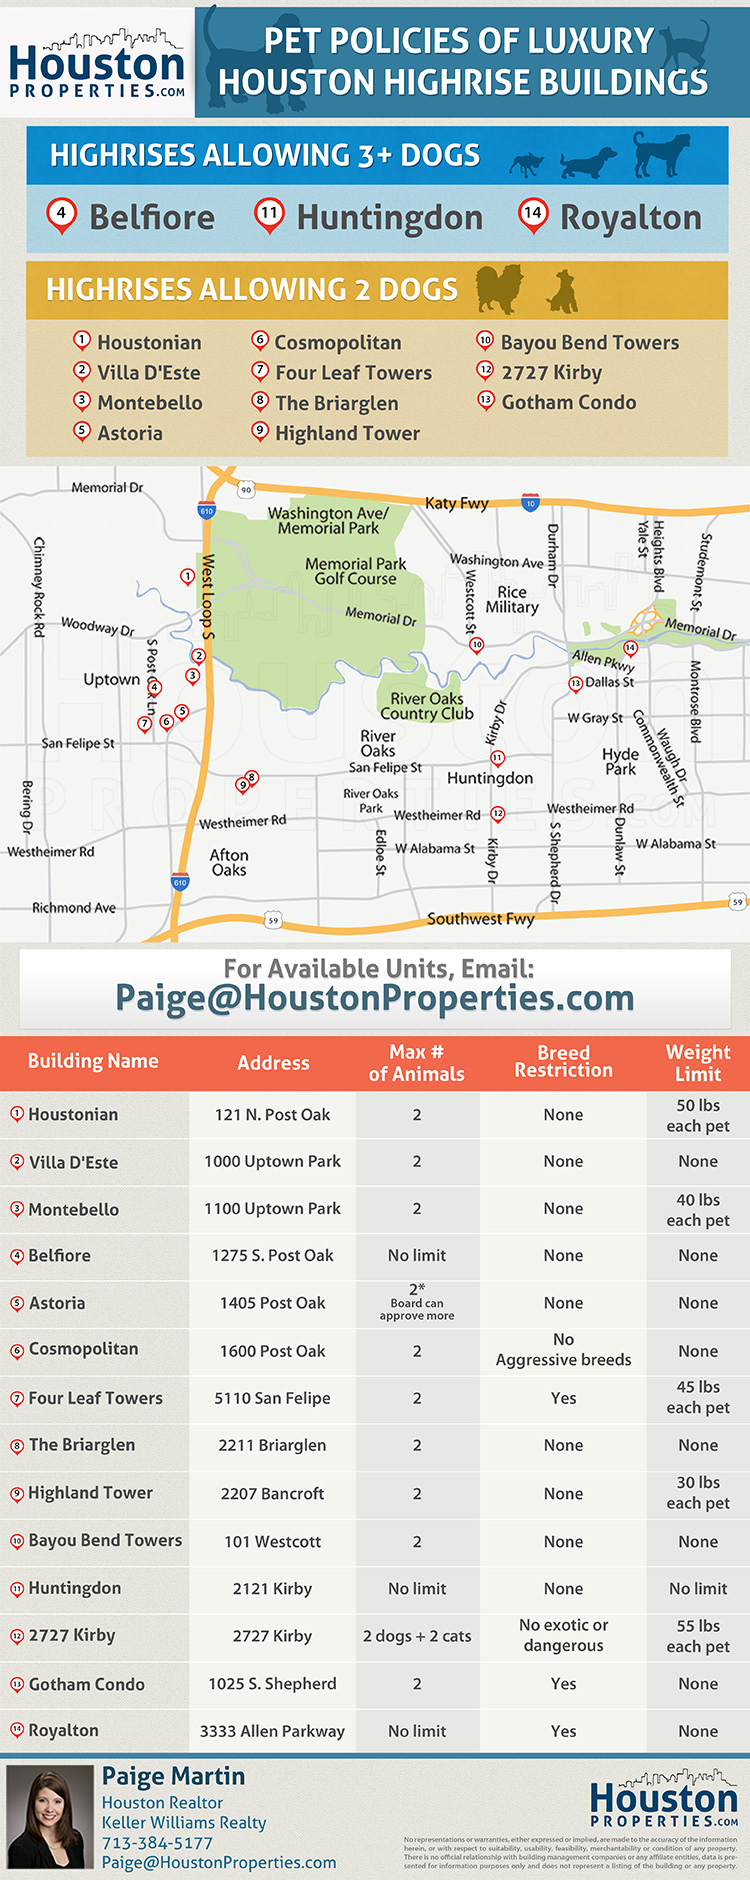 Infographic Detailing Pet Policies Of The Most Popular Houston Luxury Highrises